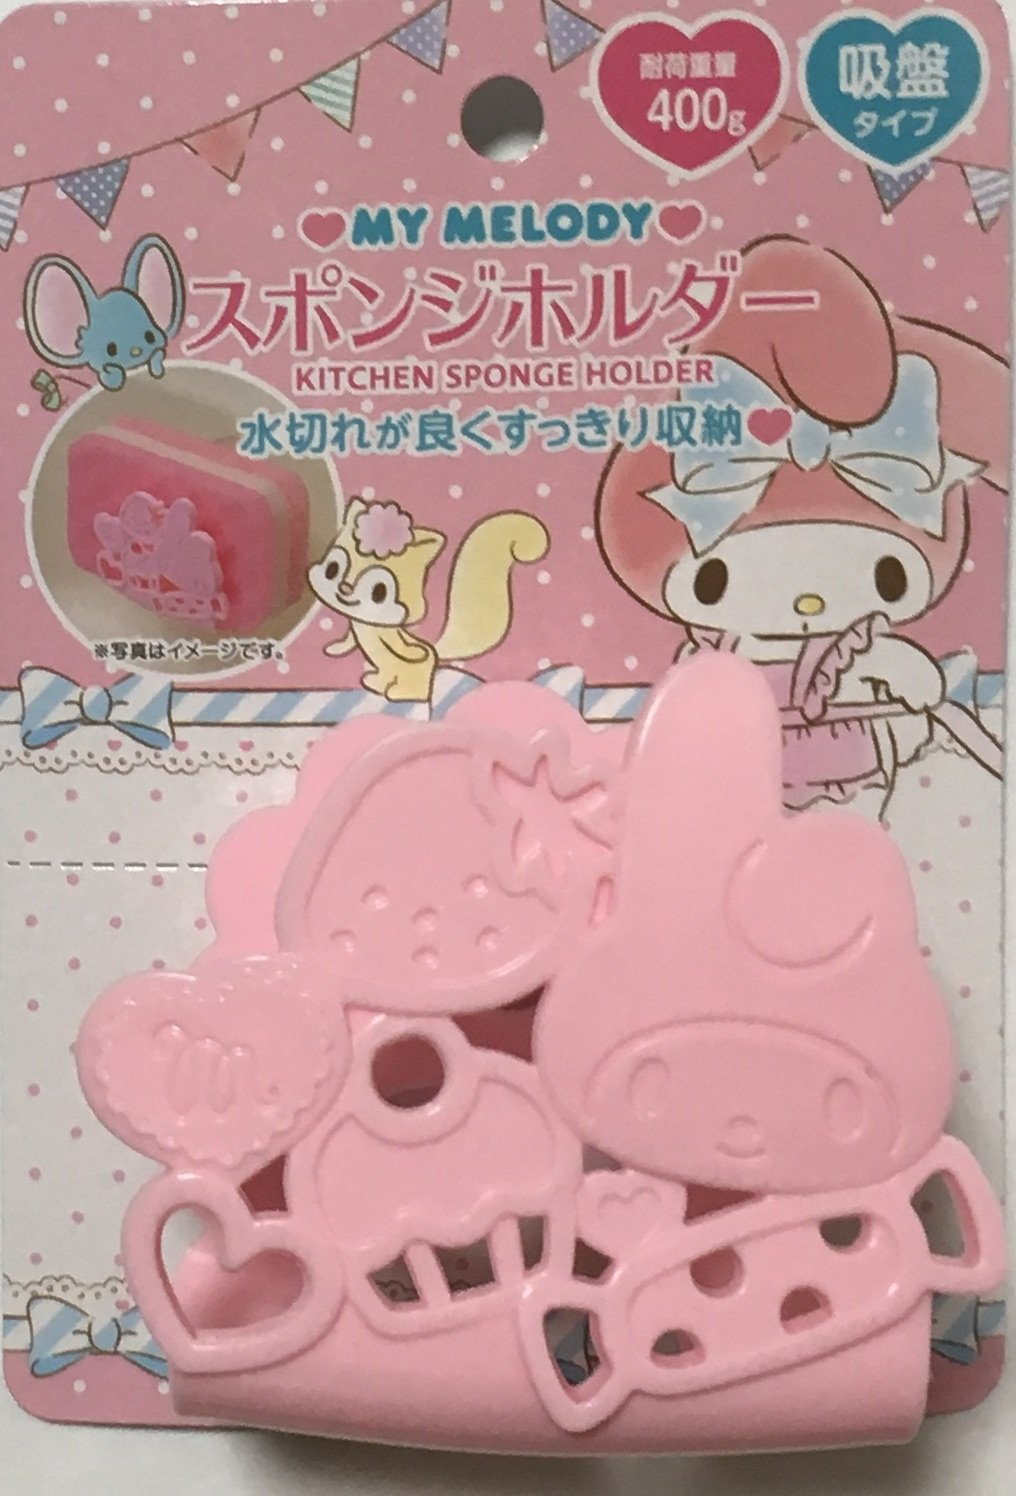 Sanrio Bath Hello Kitty Toothbrush Stand Holder Pink QQ